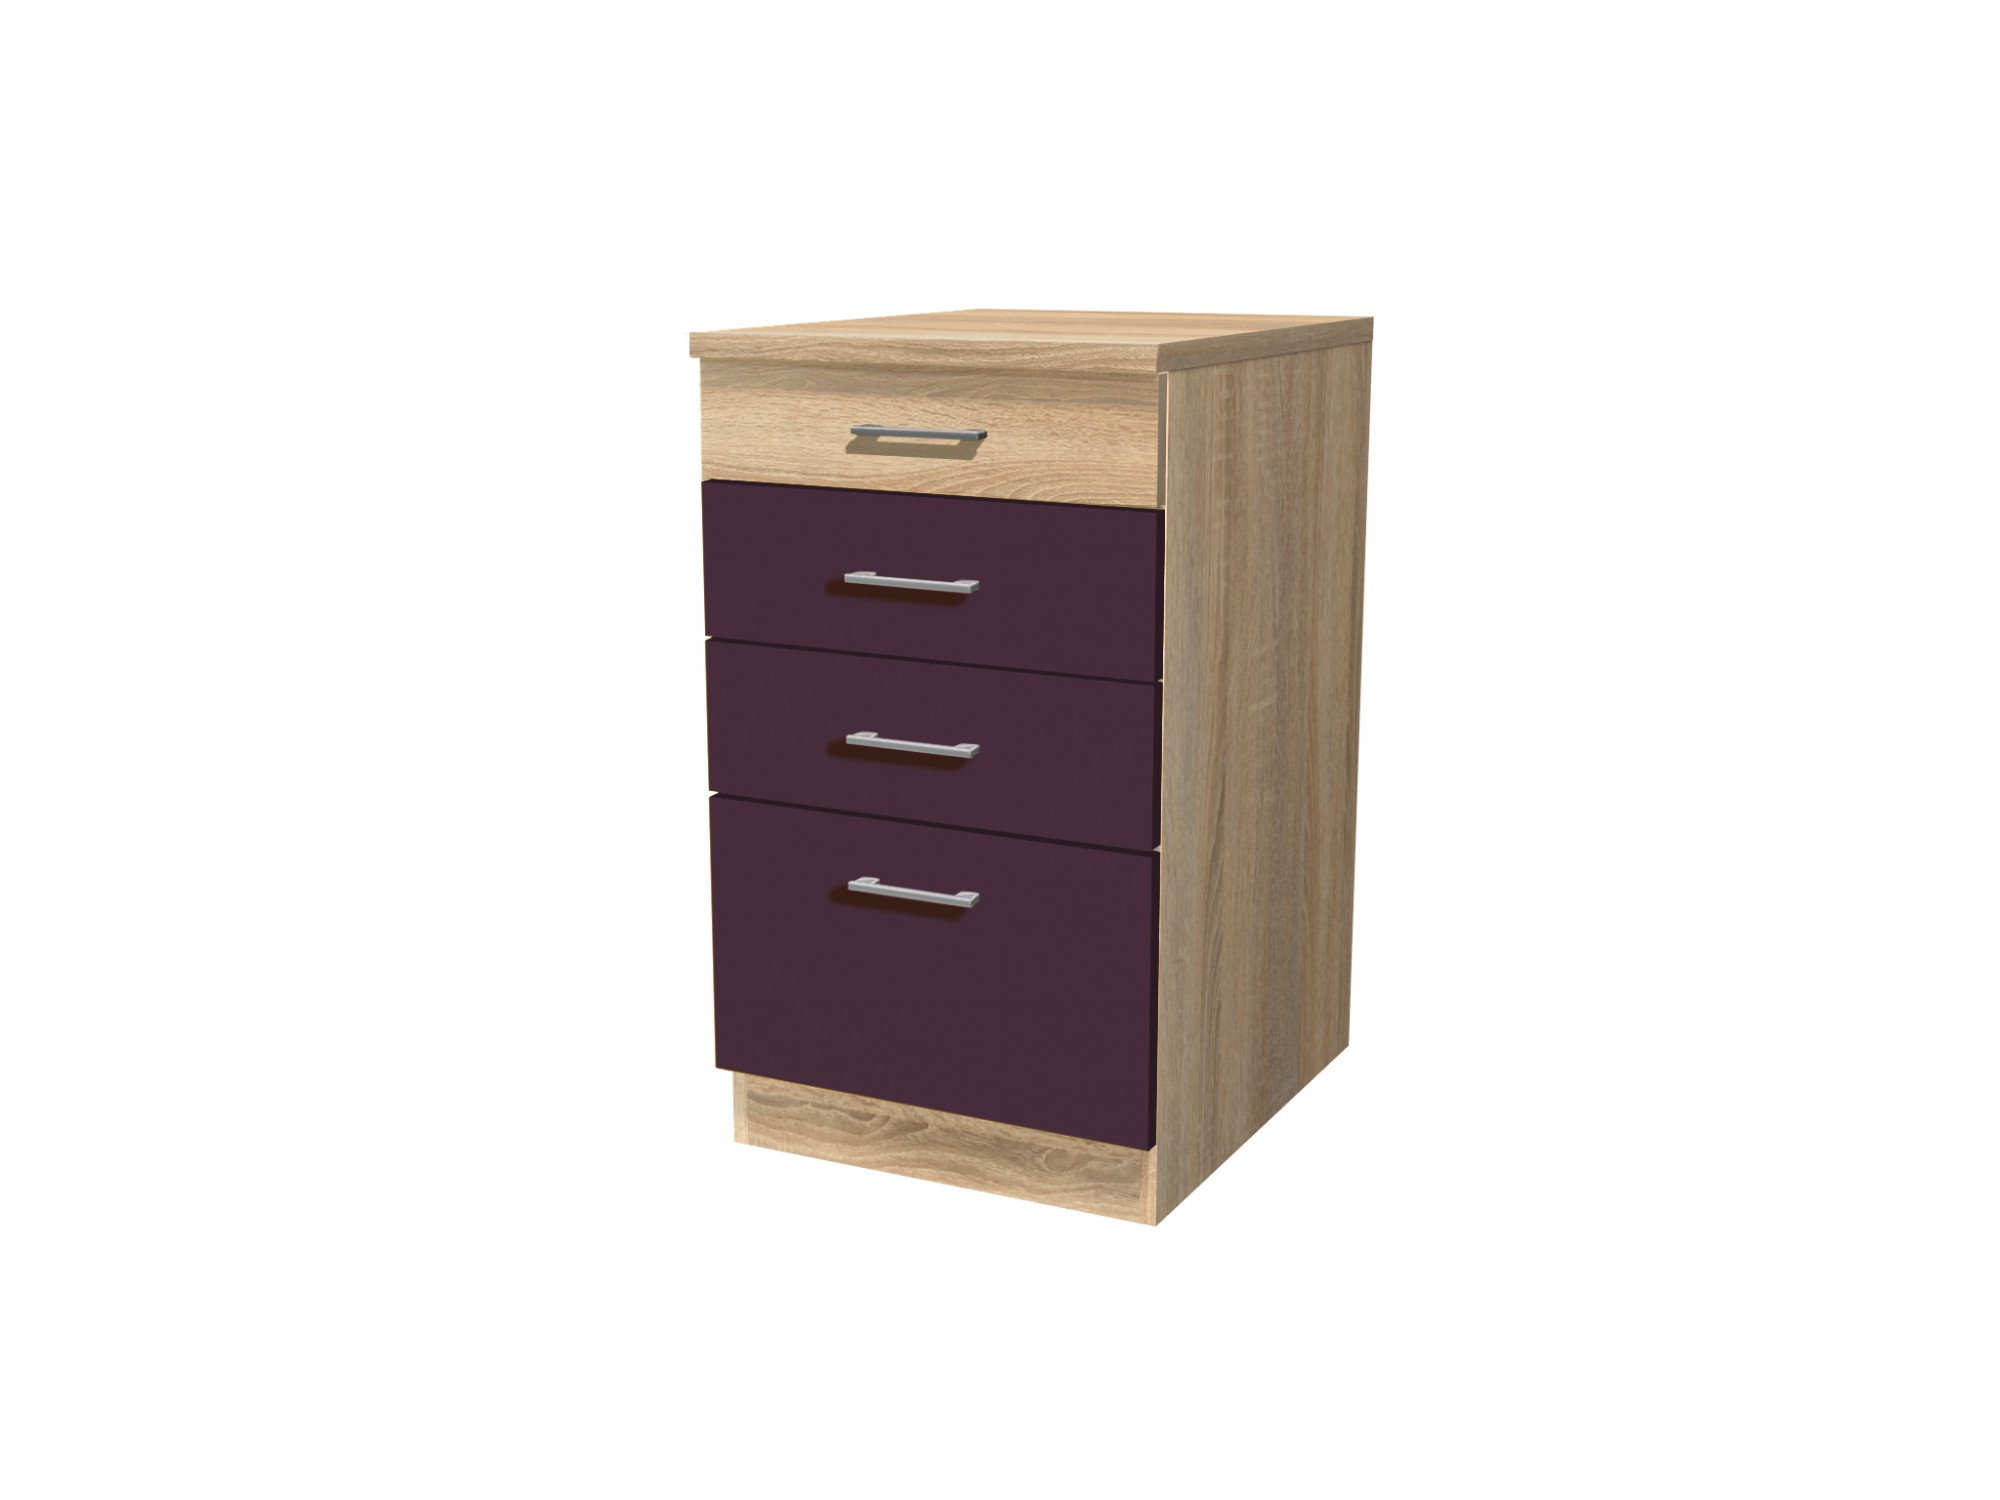 k chen unterschrank rom 1 auszug 3 schubladen 50 cm breit aubergine k che k chen. Black Bedroom Furniture Sets. Home Design Ideas